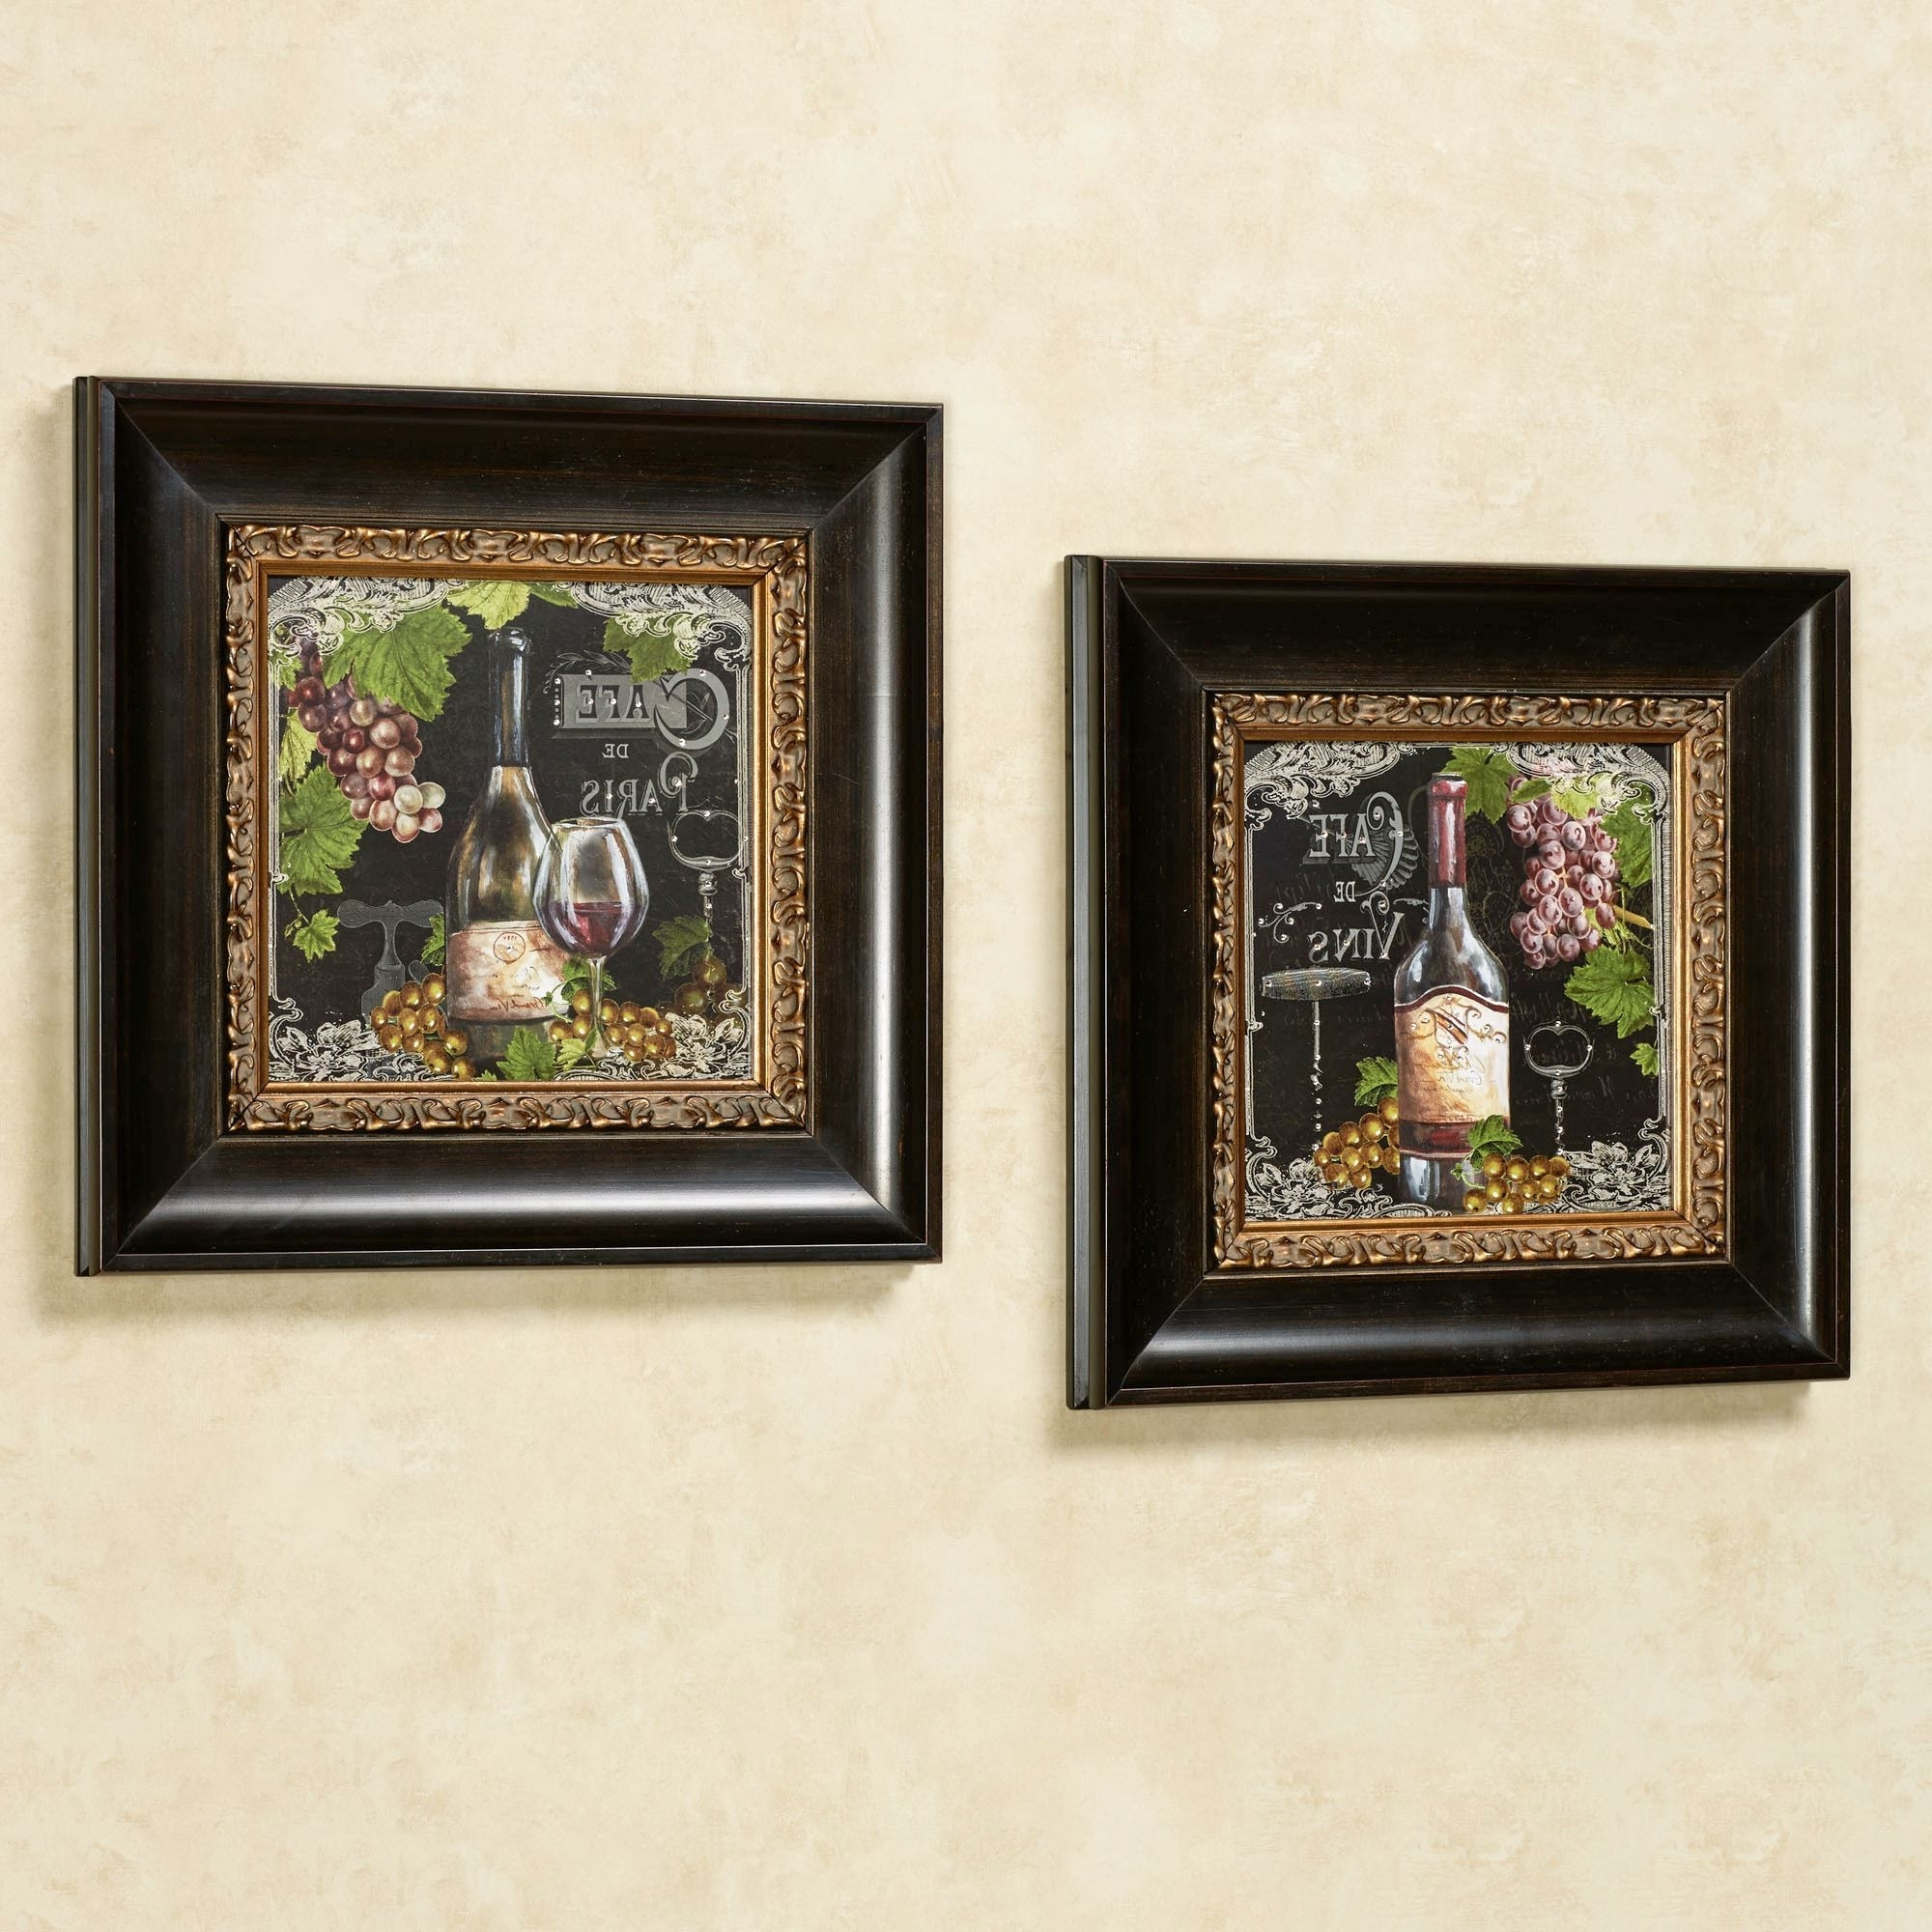 Explore Photos of Christian Framed Art Prints (Showing 6 of 15 Photos)